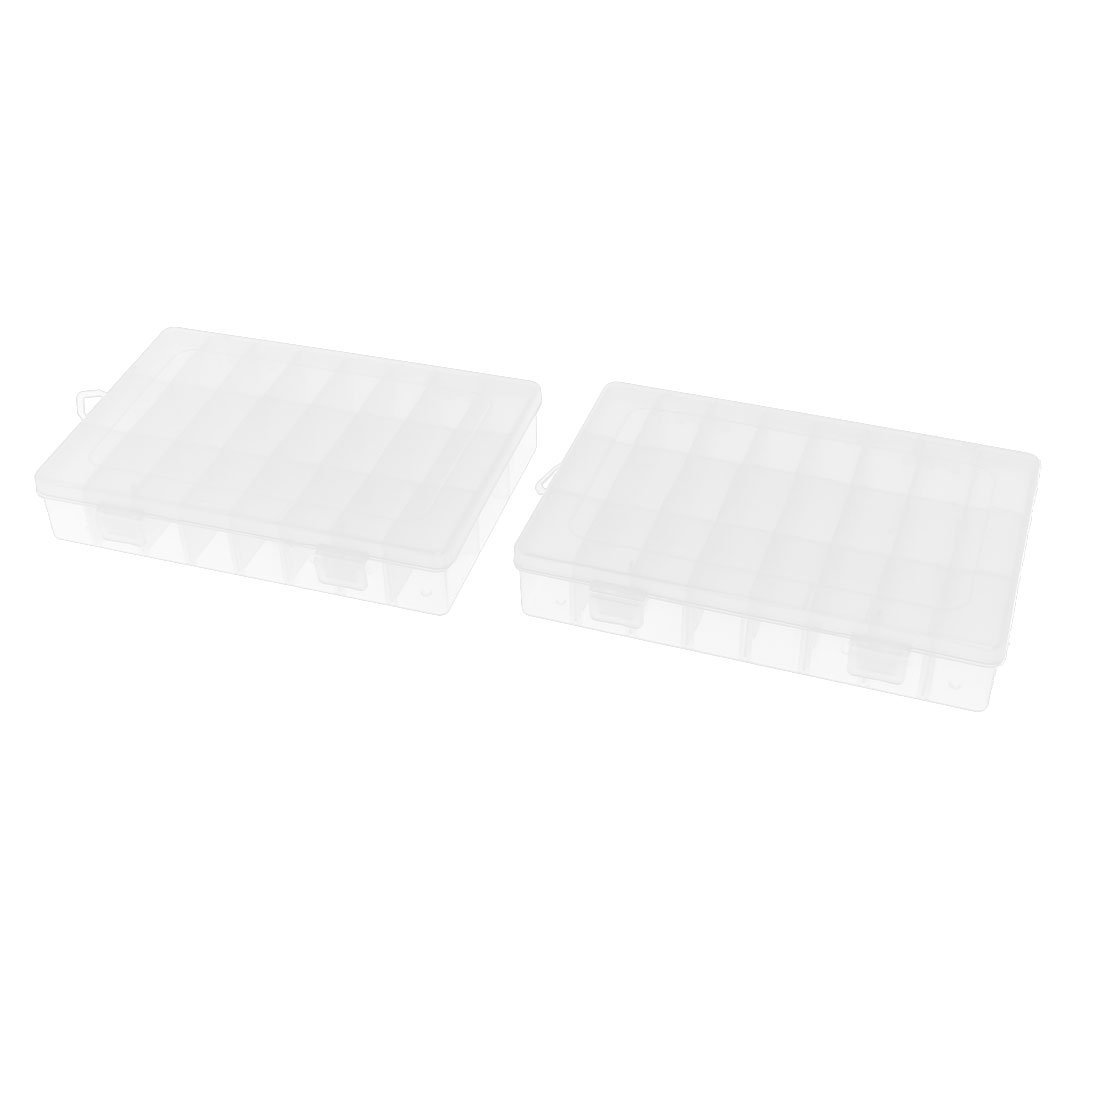 Uxcell a15092100ux0177 24 Separable Compartments Electronic Components Storage Box